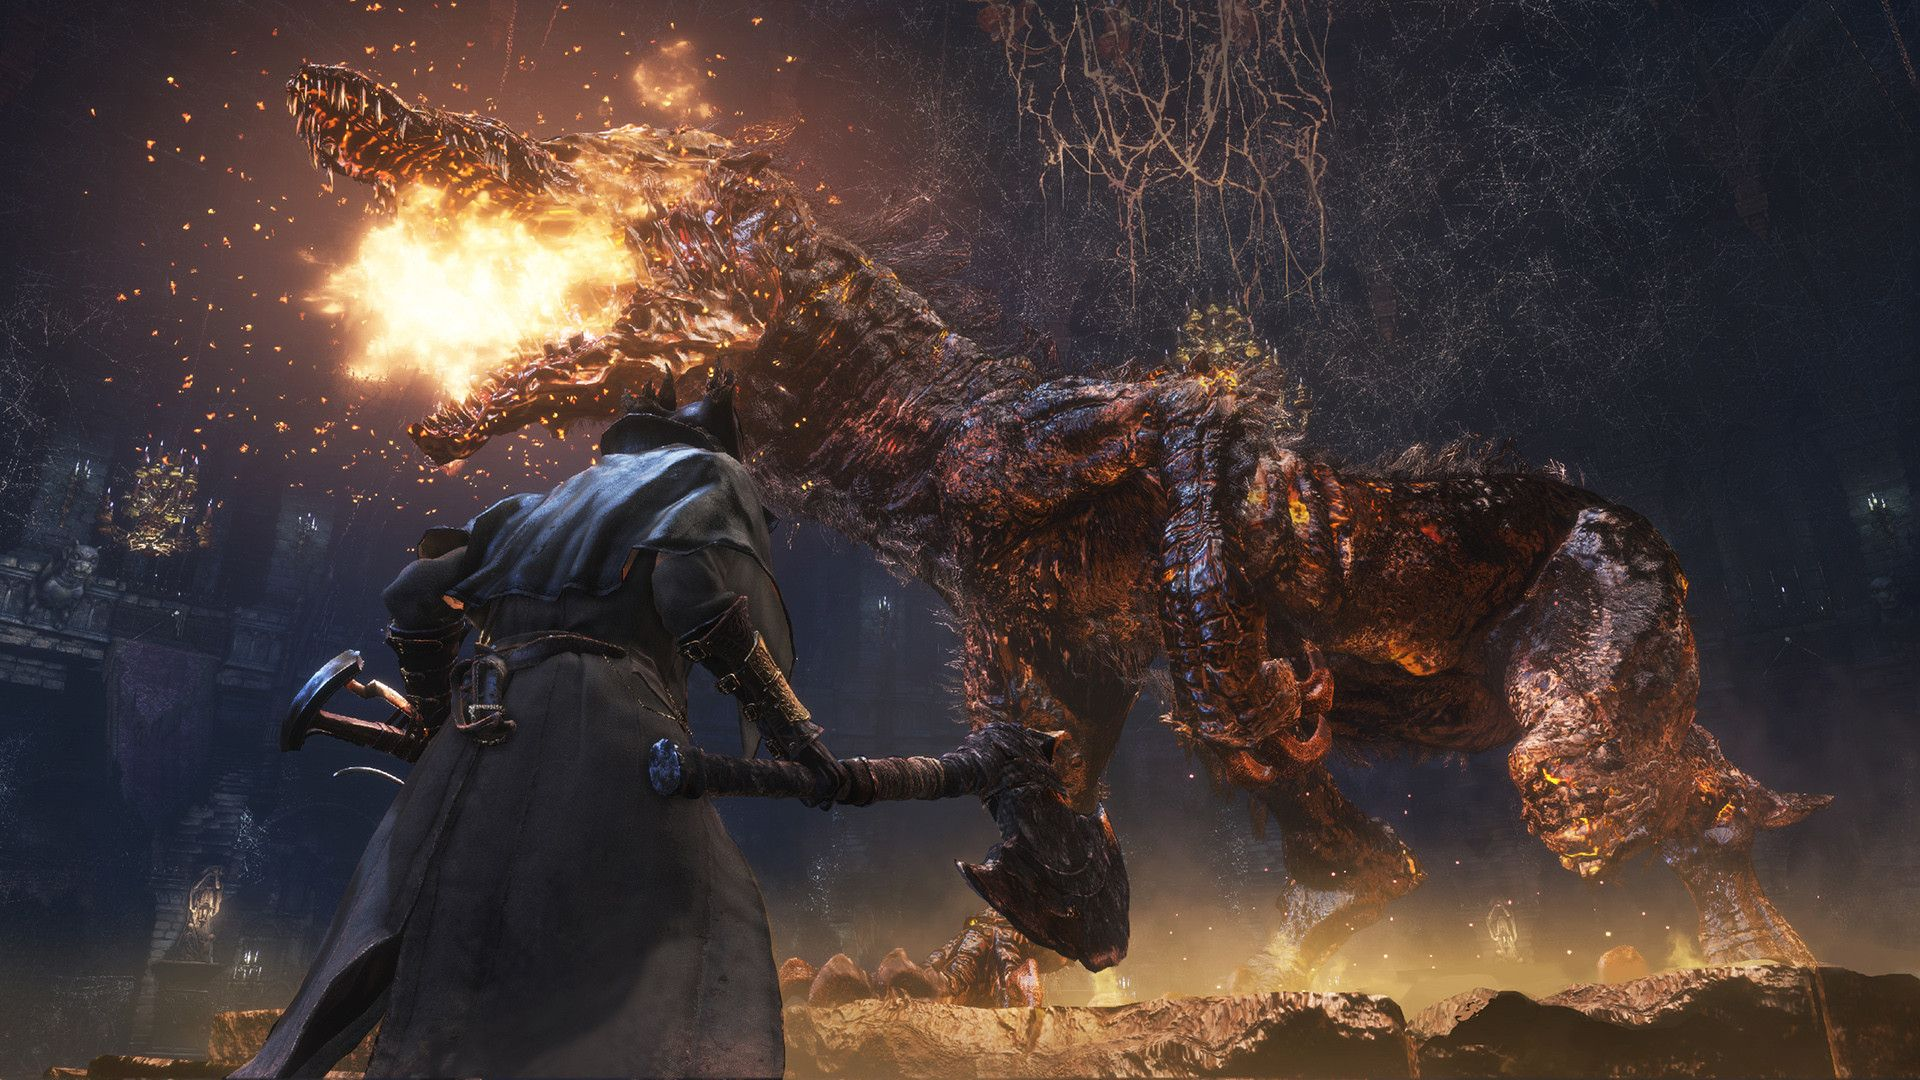 Bloodborne Gamespot With Images Bloodborne Ps4 Games Ps4